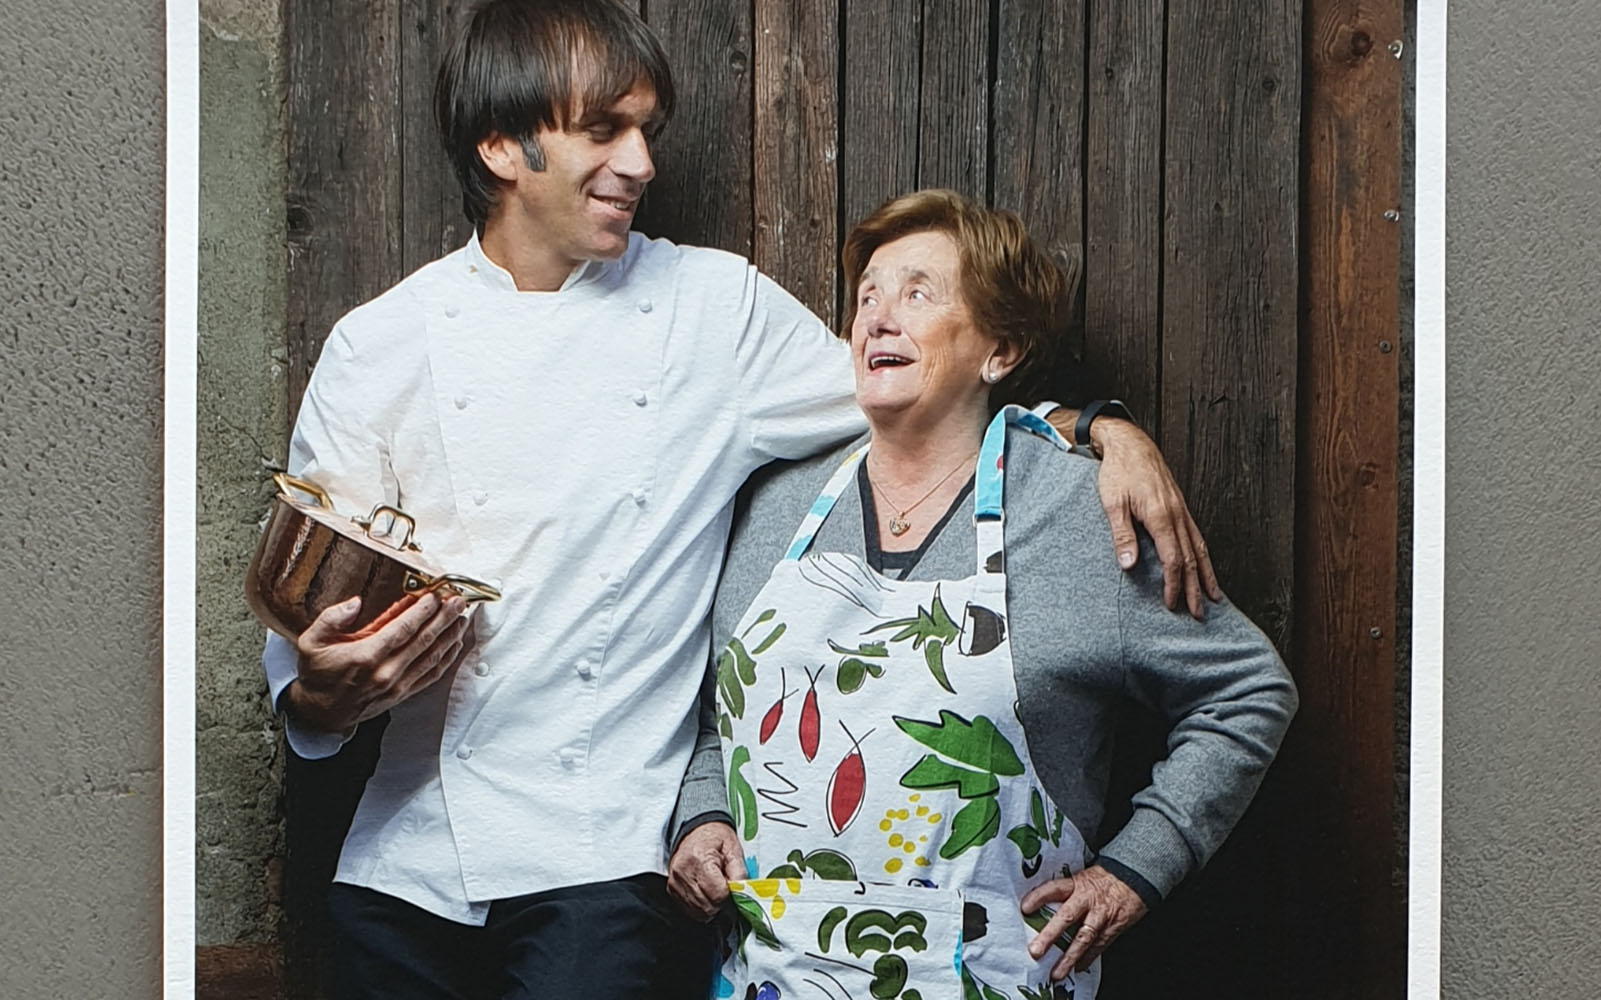 The mothers of the world are all beautiful when a chef takes their heart